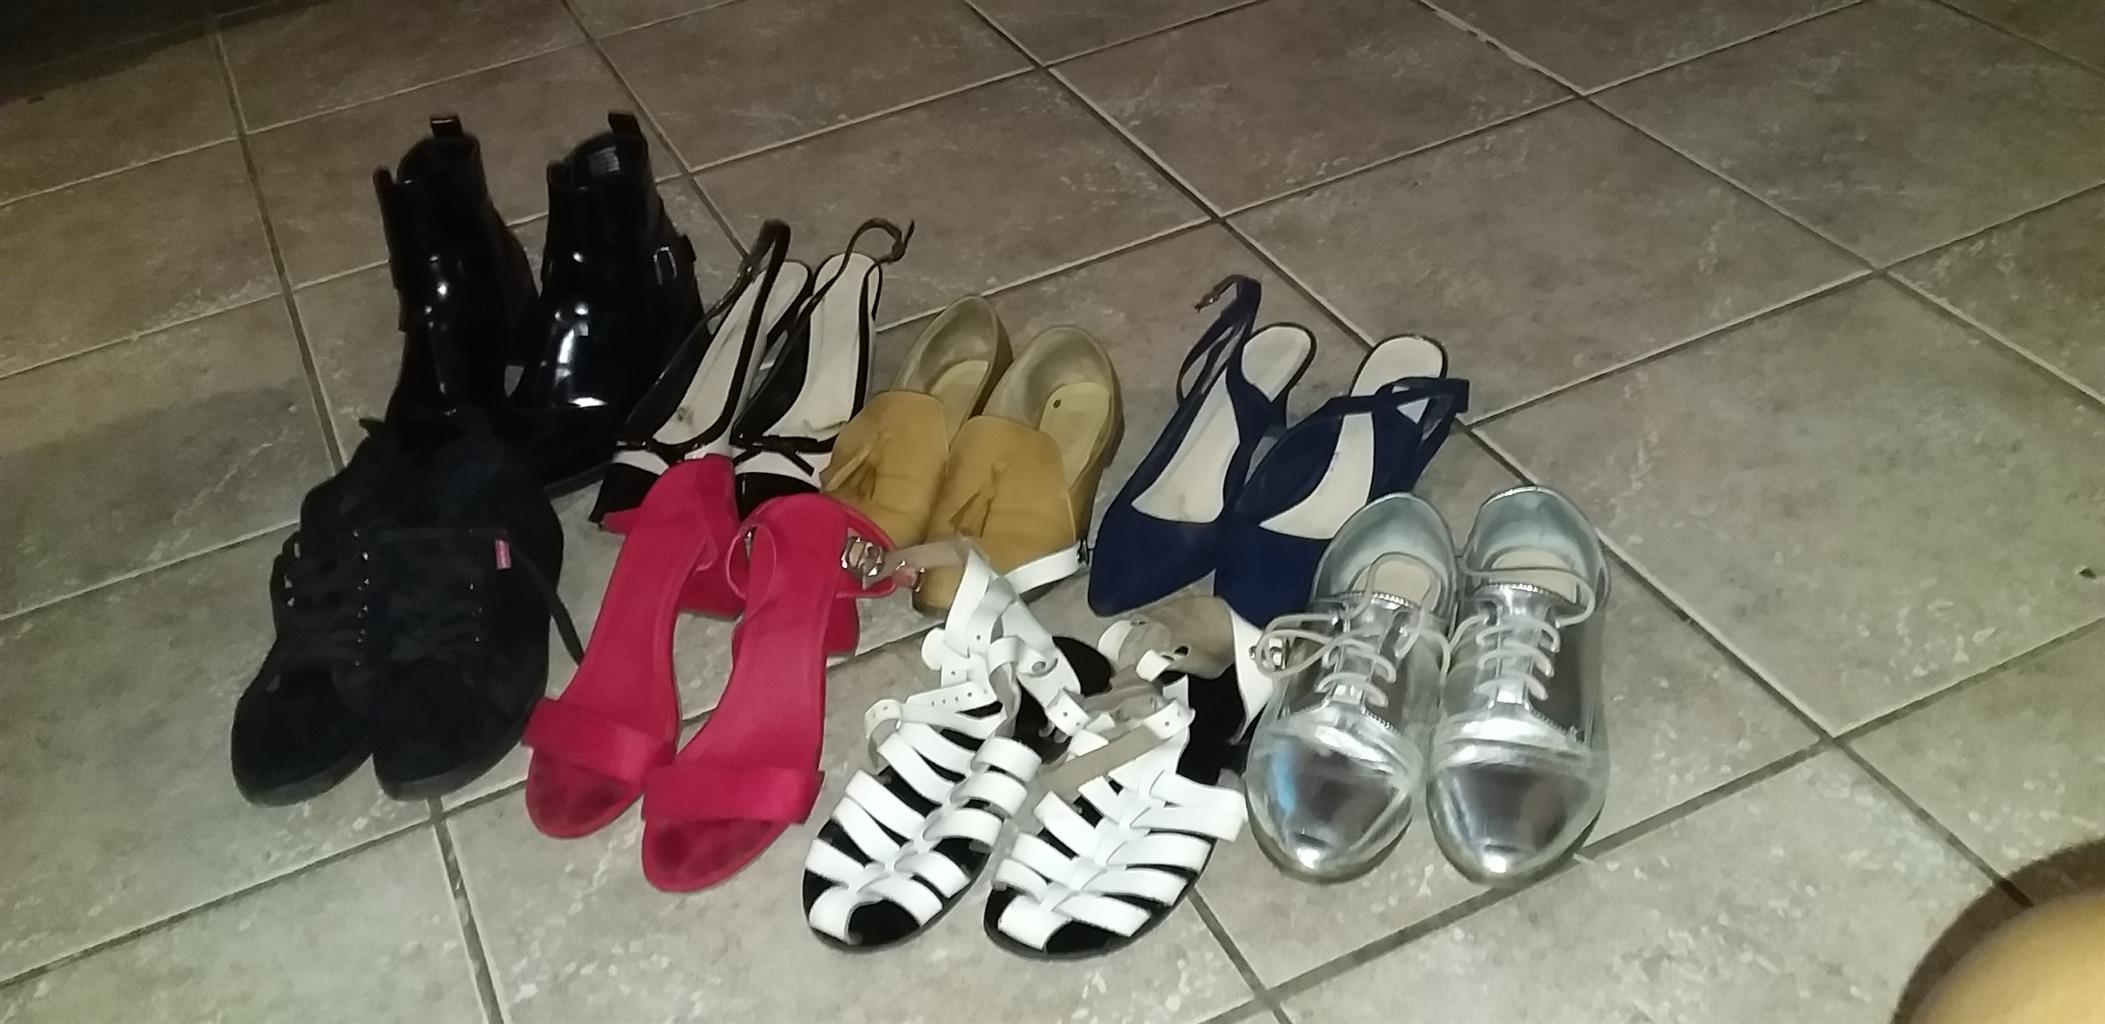 Used clothes and shoes